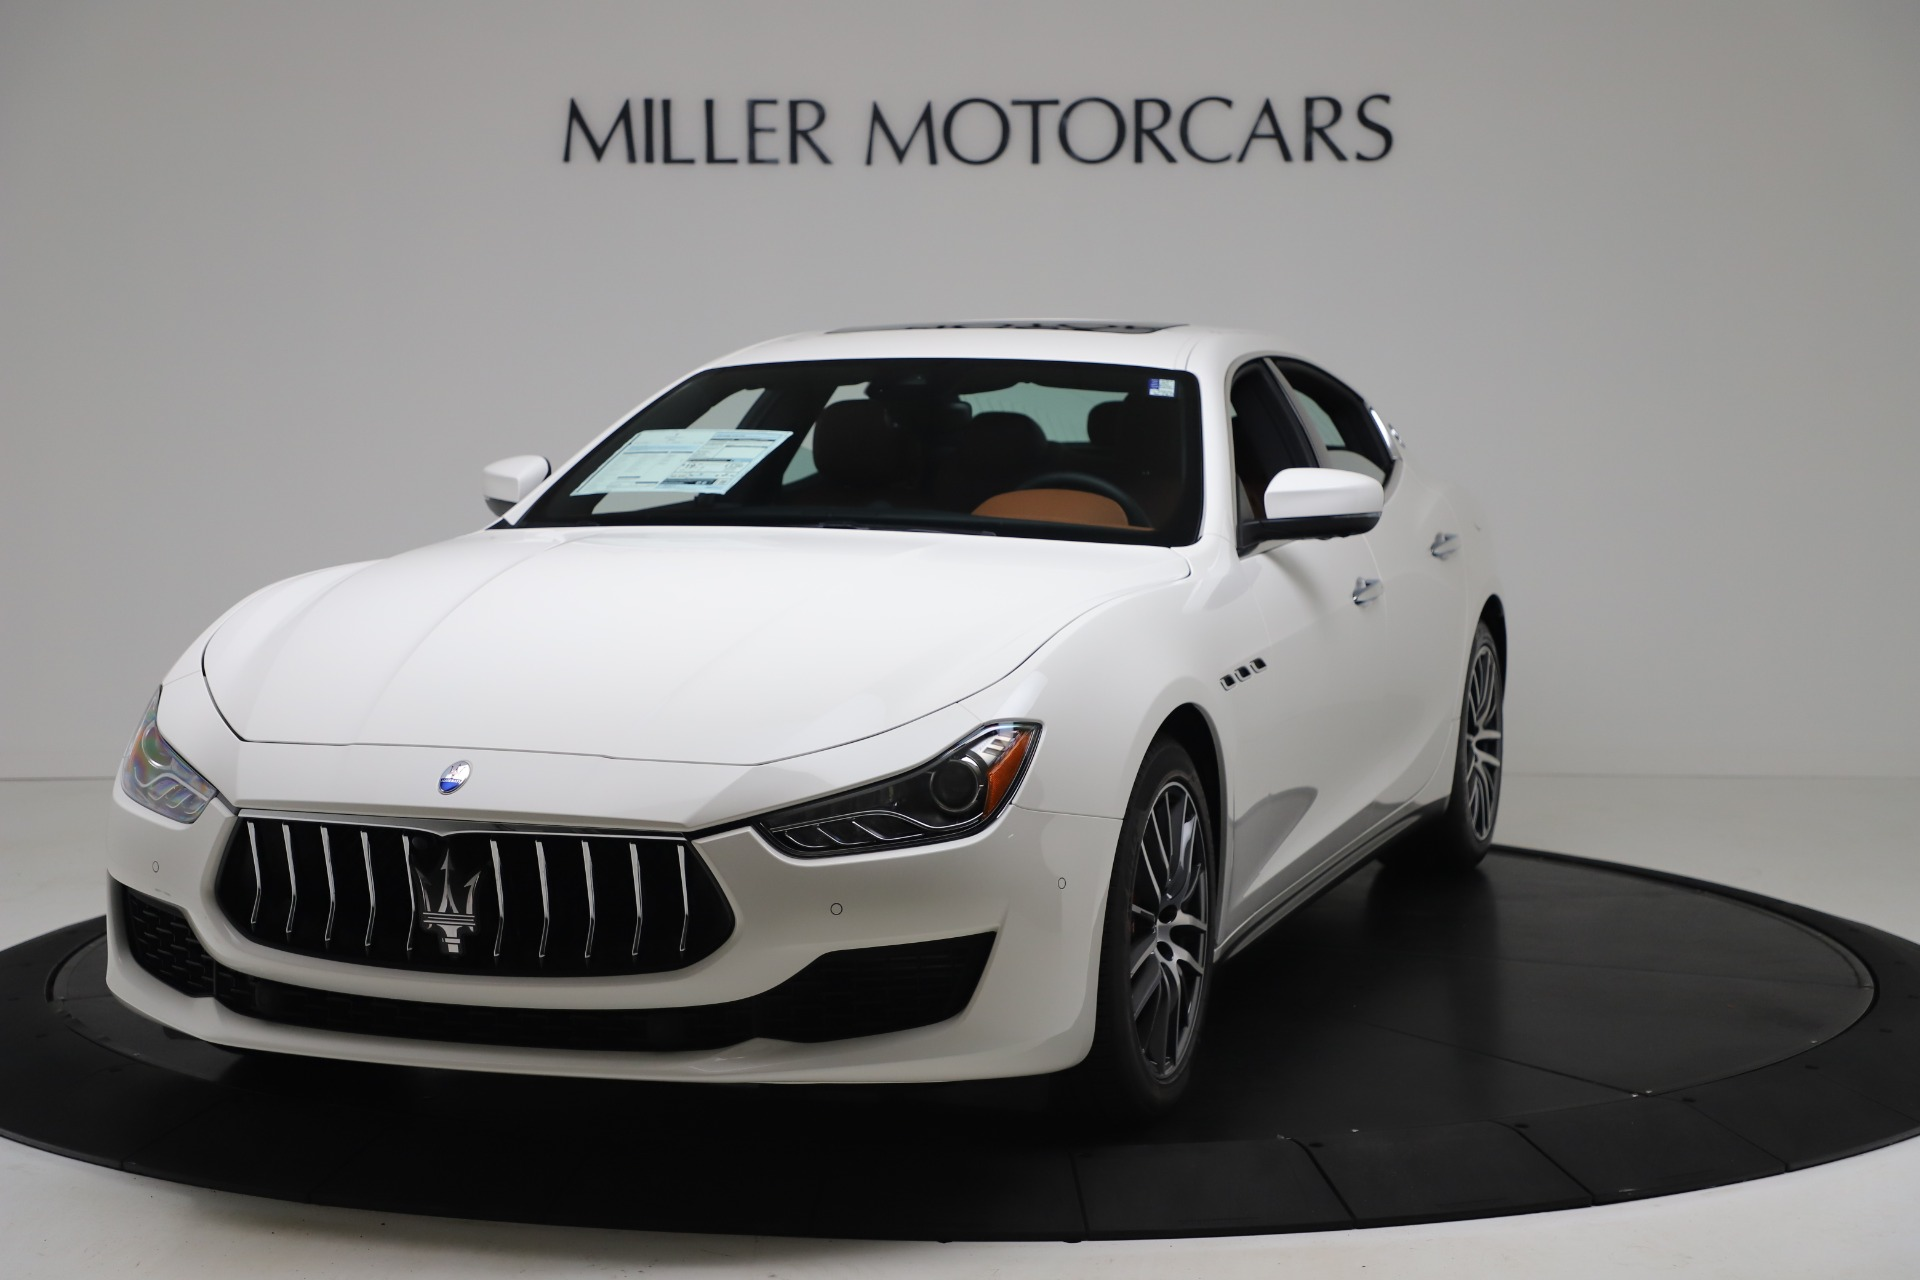 New 2020 Maserati Ghibli S Q4 for sale $84,735 at McLaren Greenwich in Greenwich CT 06830 1